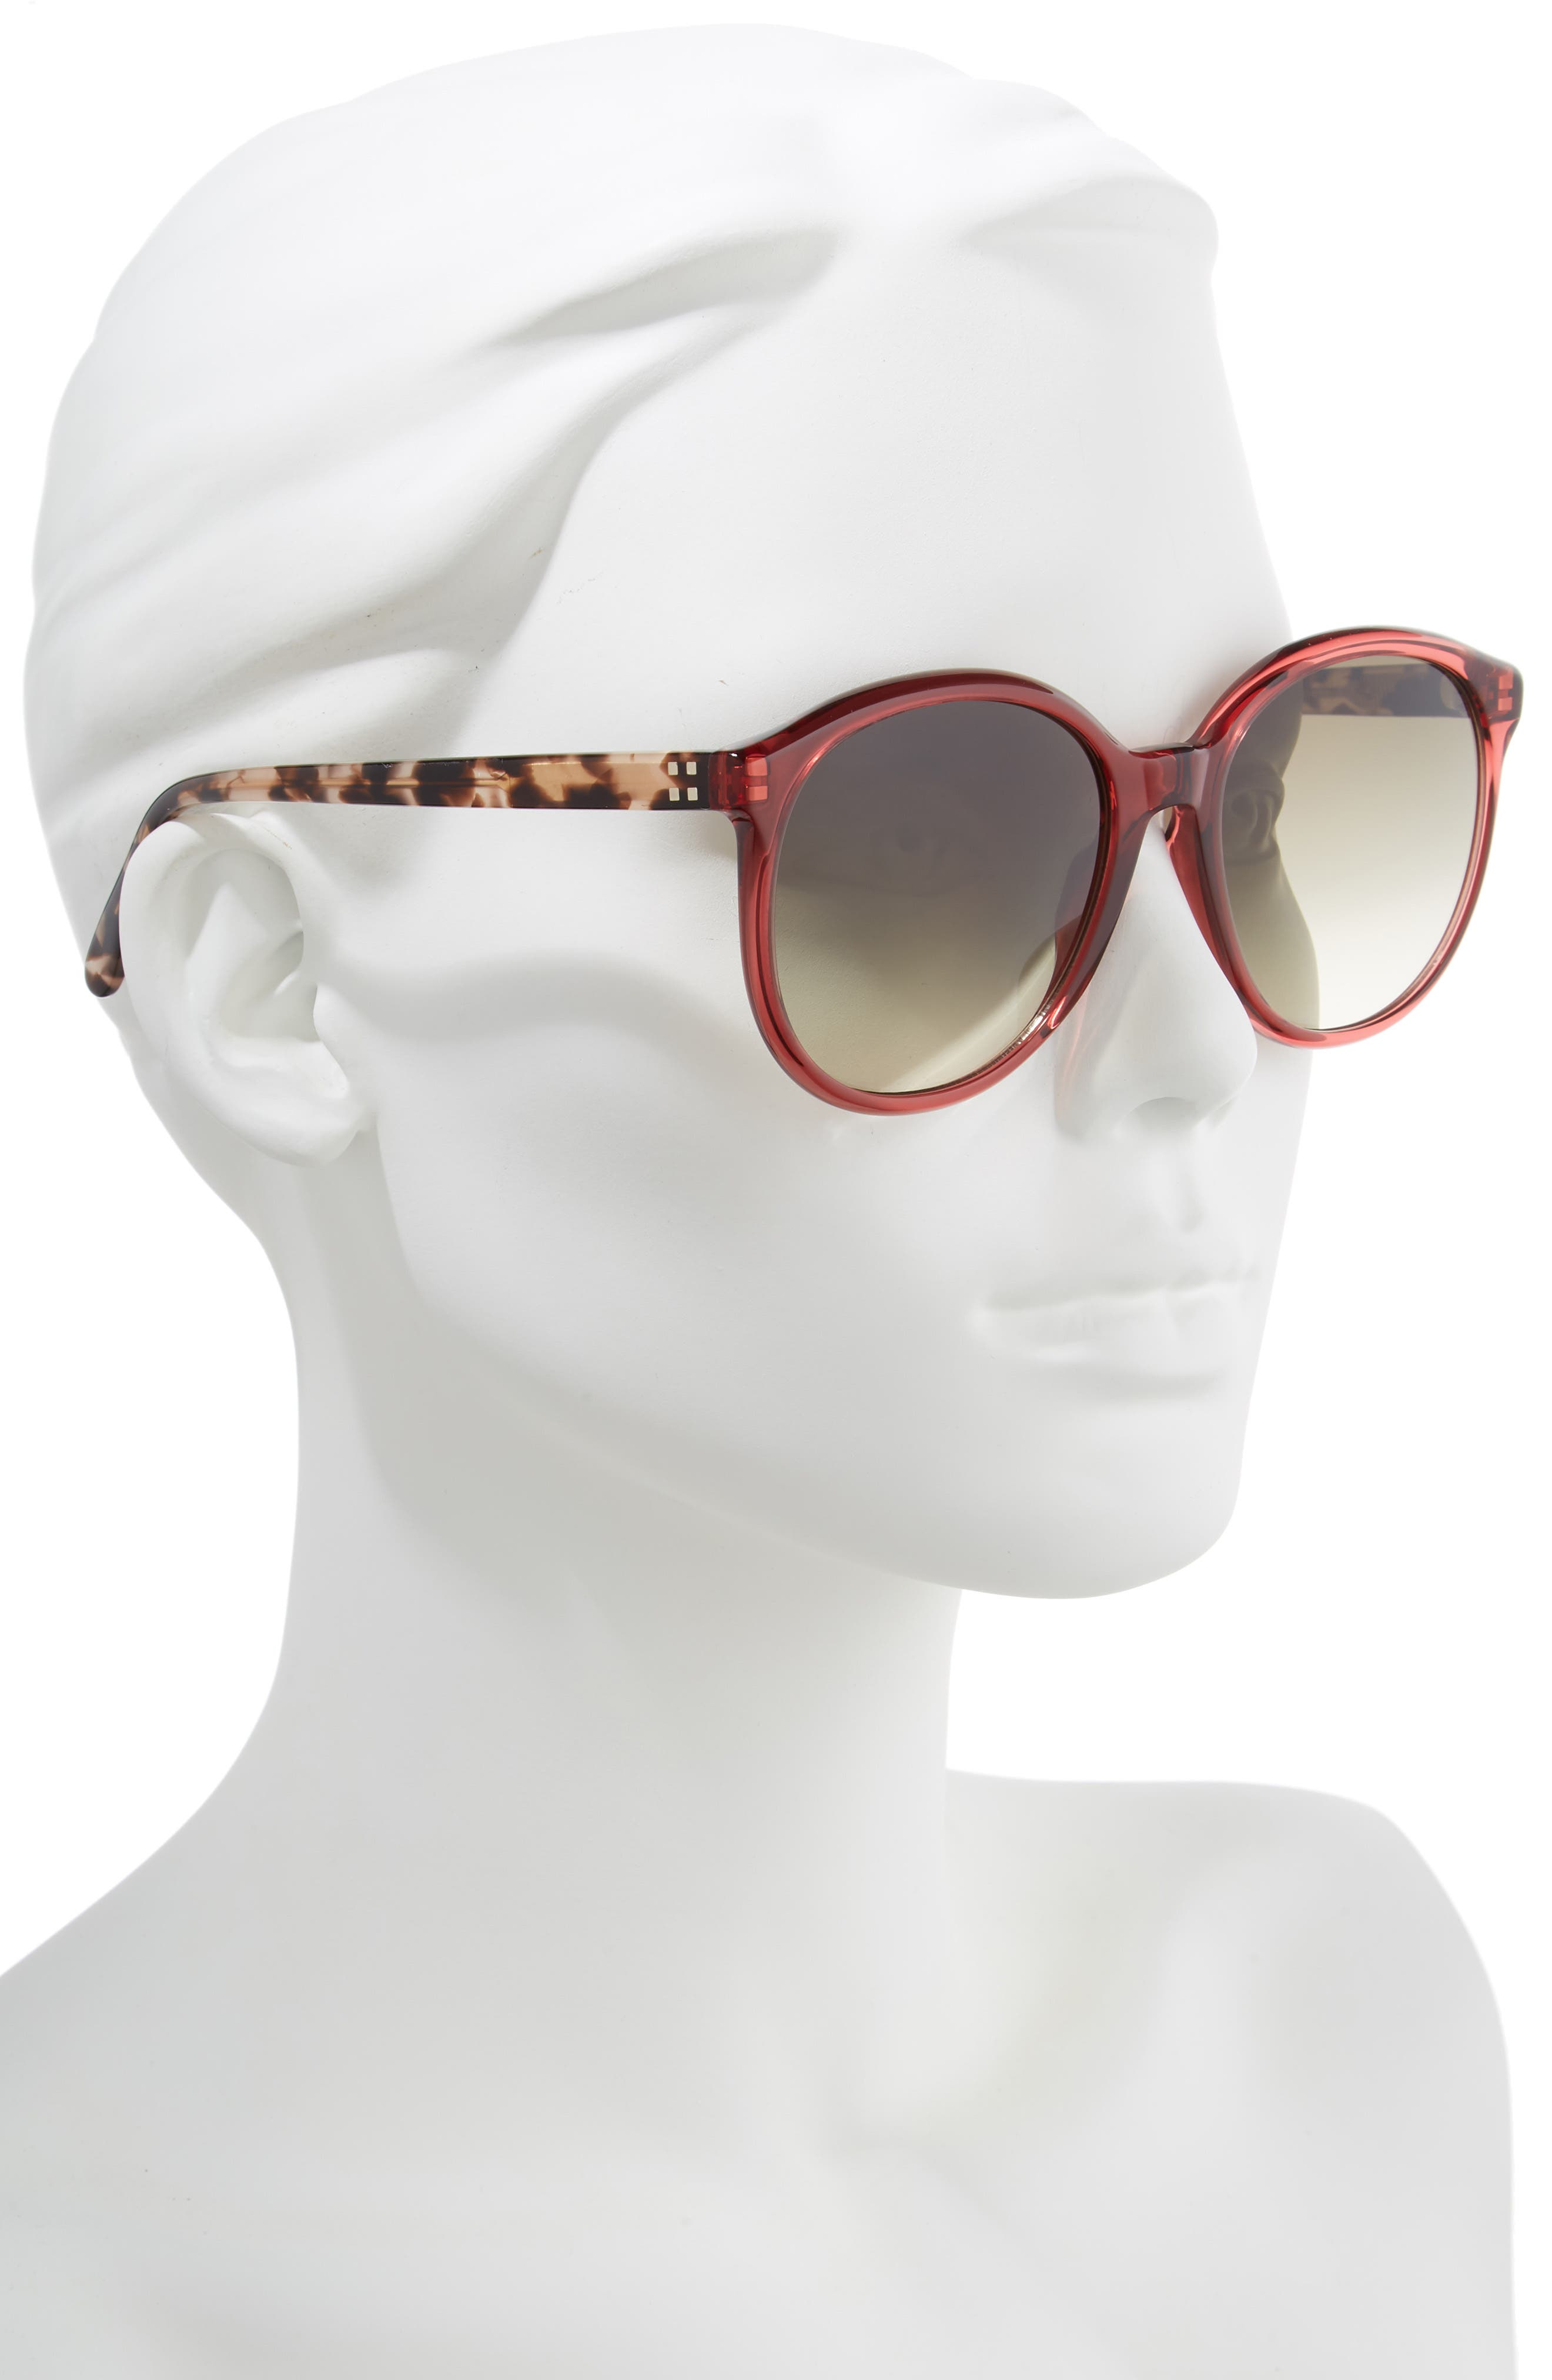 303b4f99cb1d Givenchy Sunglasses for Women | Nordstrom